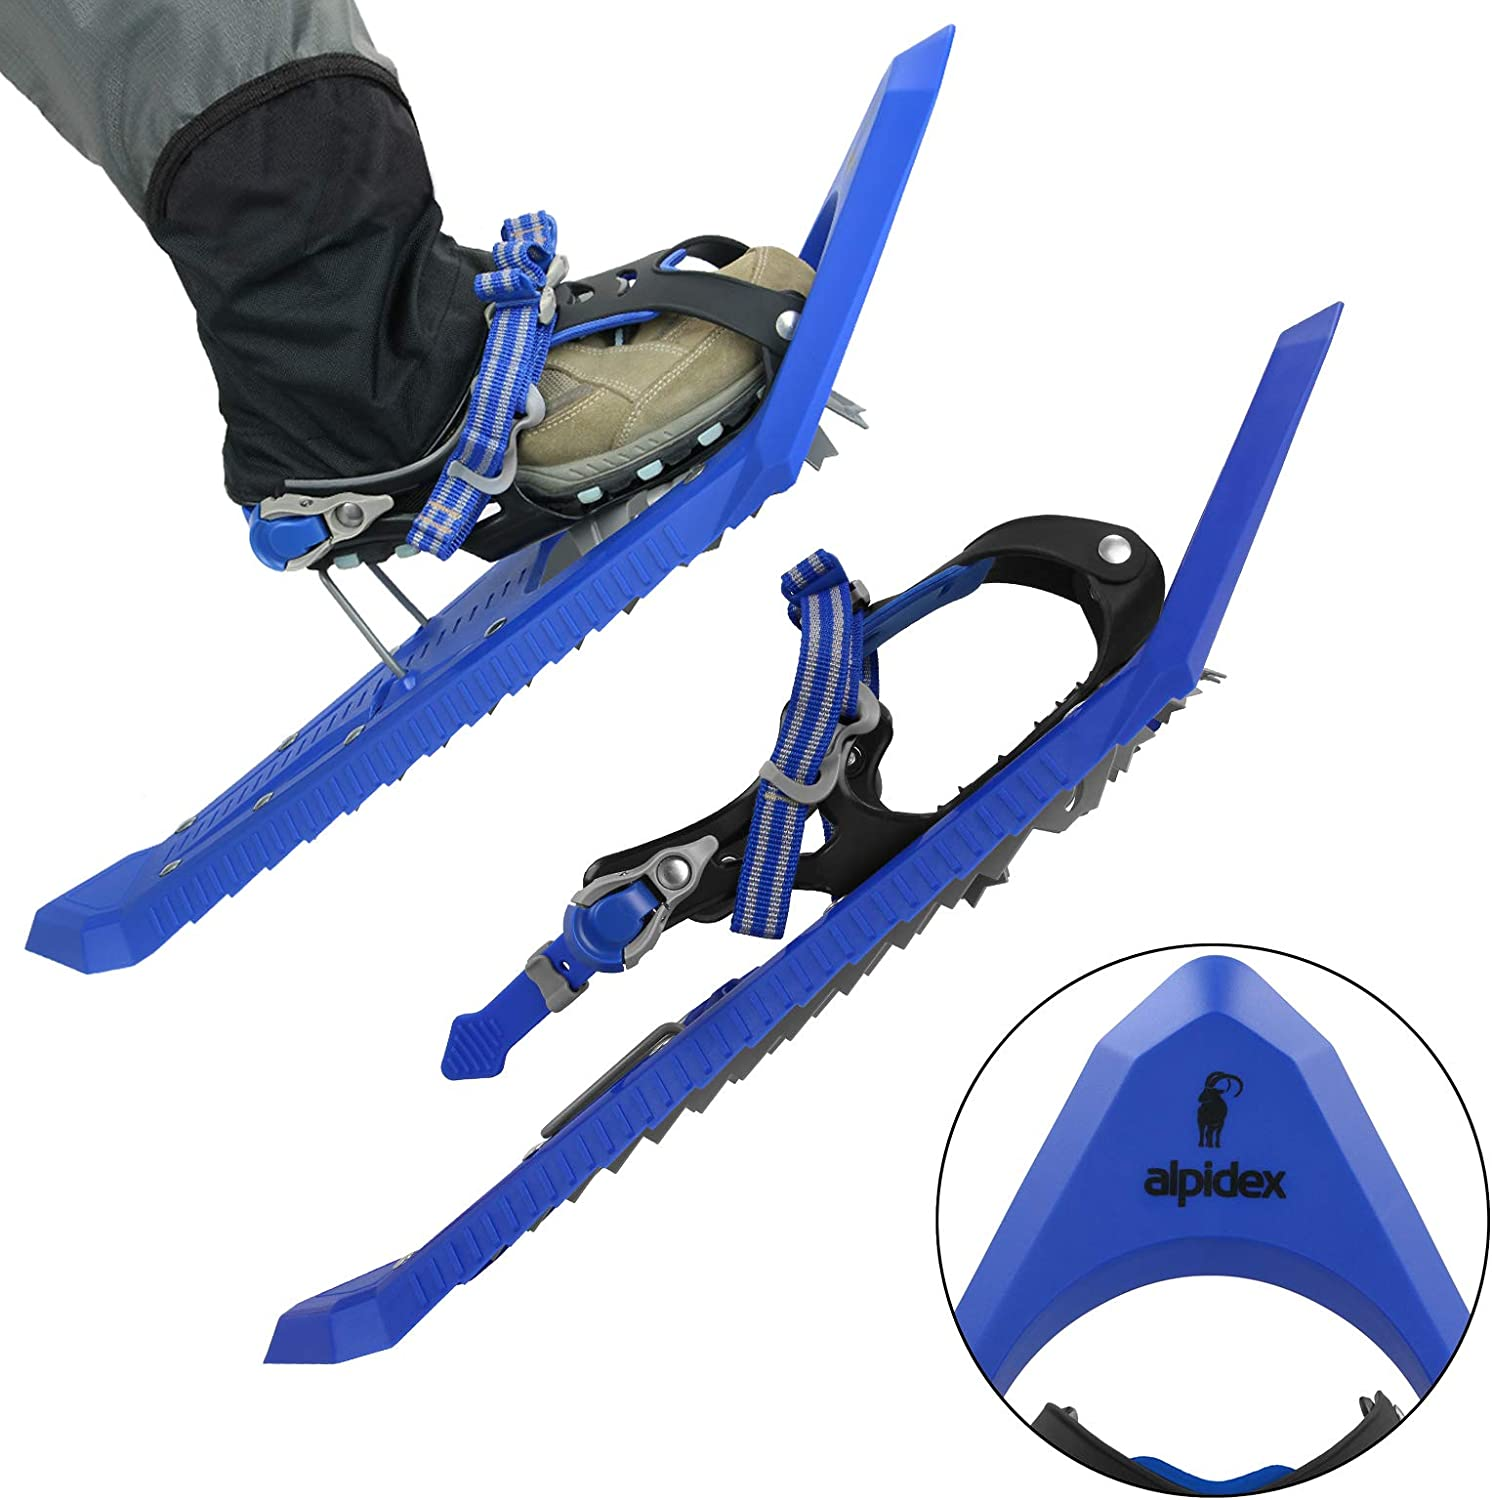 ALPIDEX Snowshoes Climbing Aid Shoe Sizes 38 to 45 User Weight up to 130 kg Carrying Bag Optional Telescopic Poles